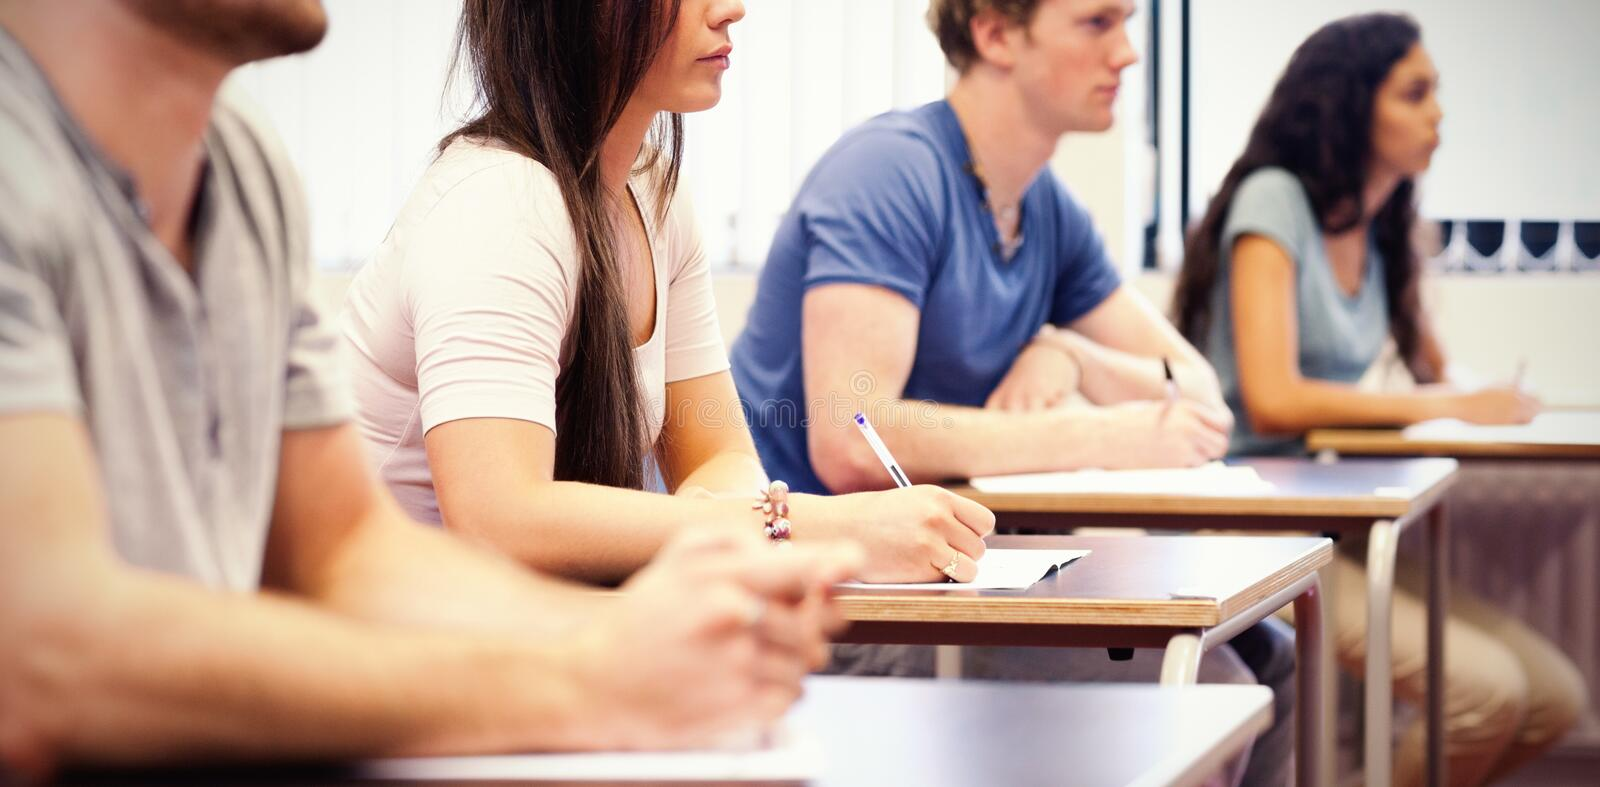 Studious young adults listening in classroom royalty free stock photography